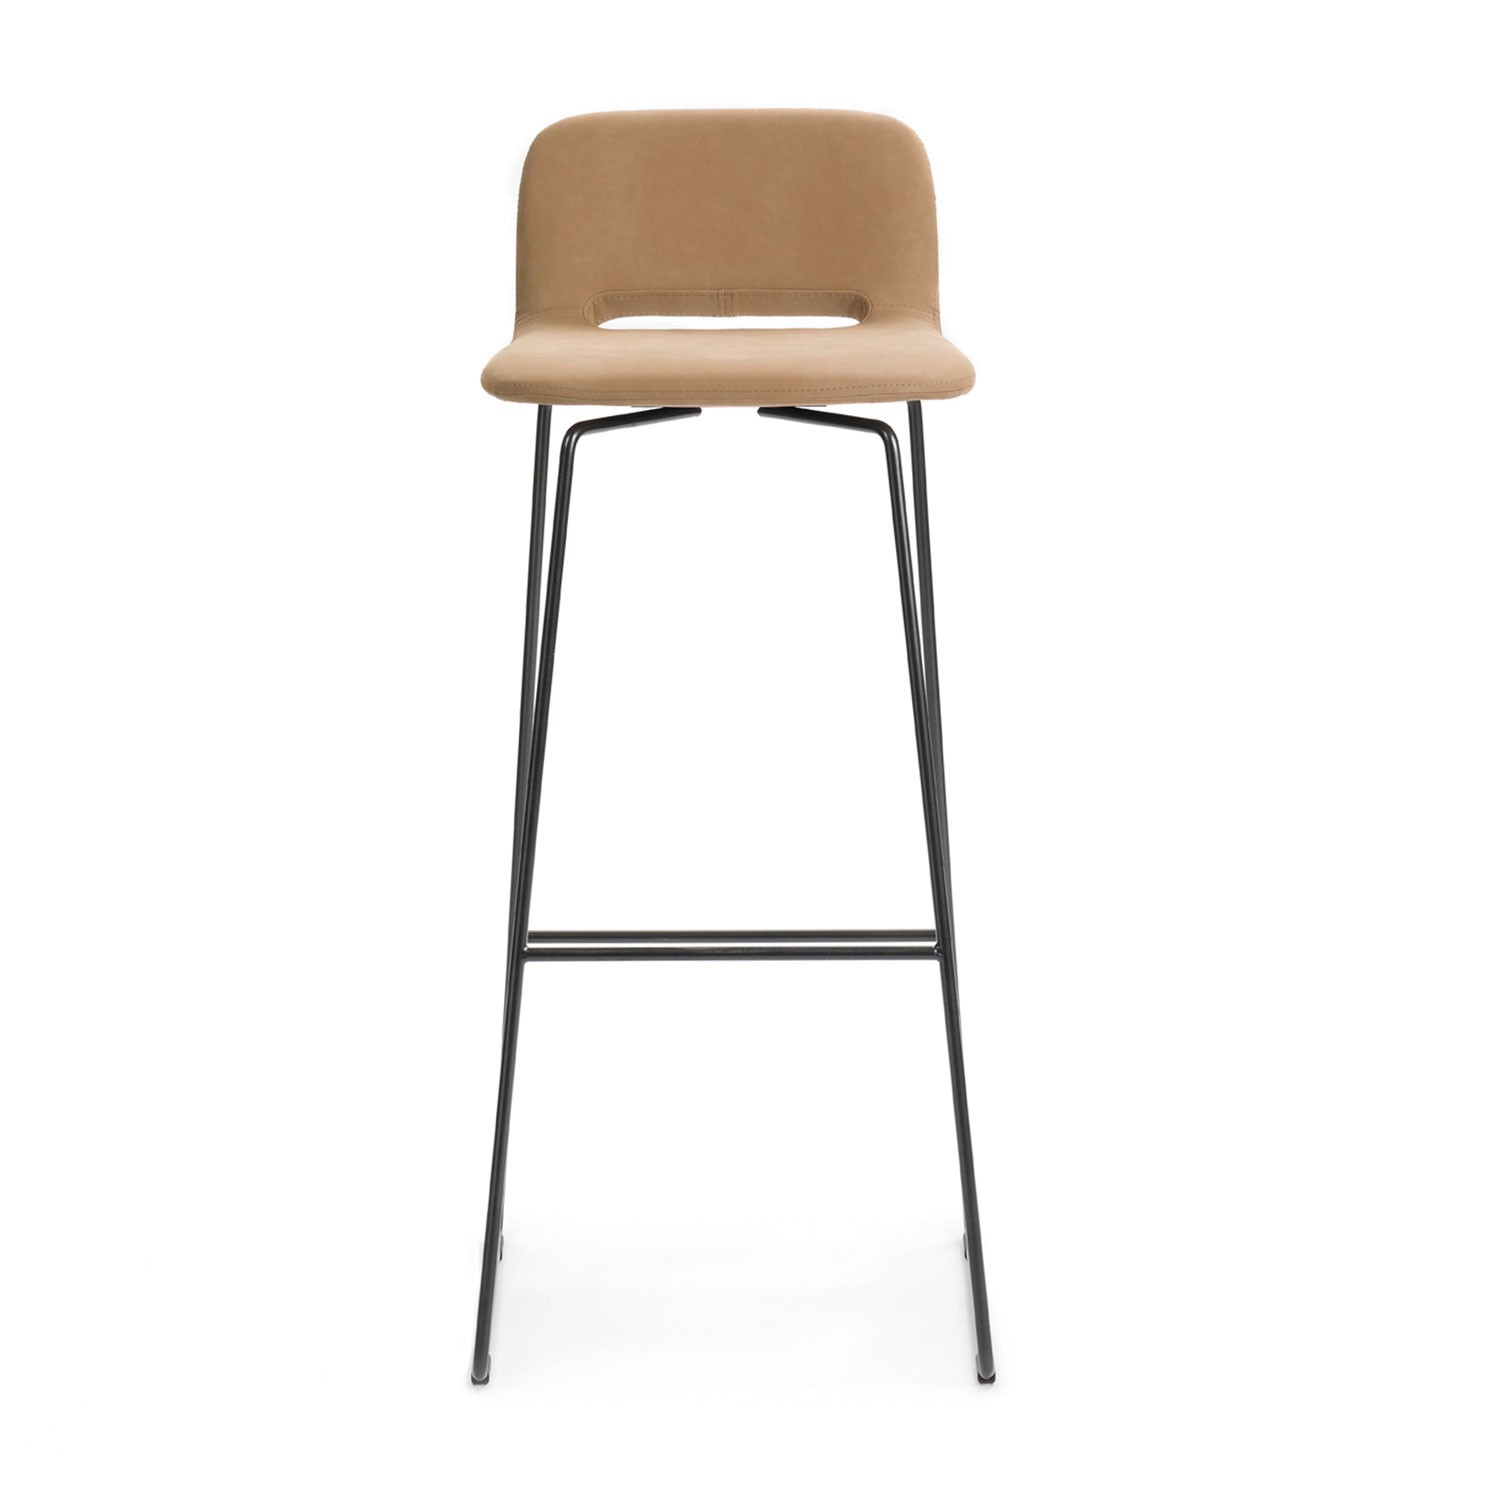 Clapton bar stool H82 - metal frame